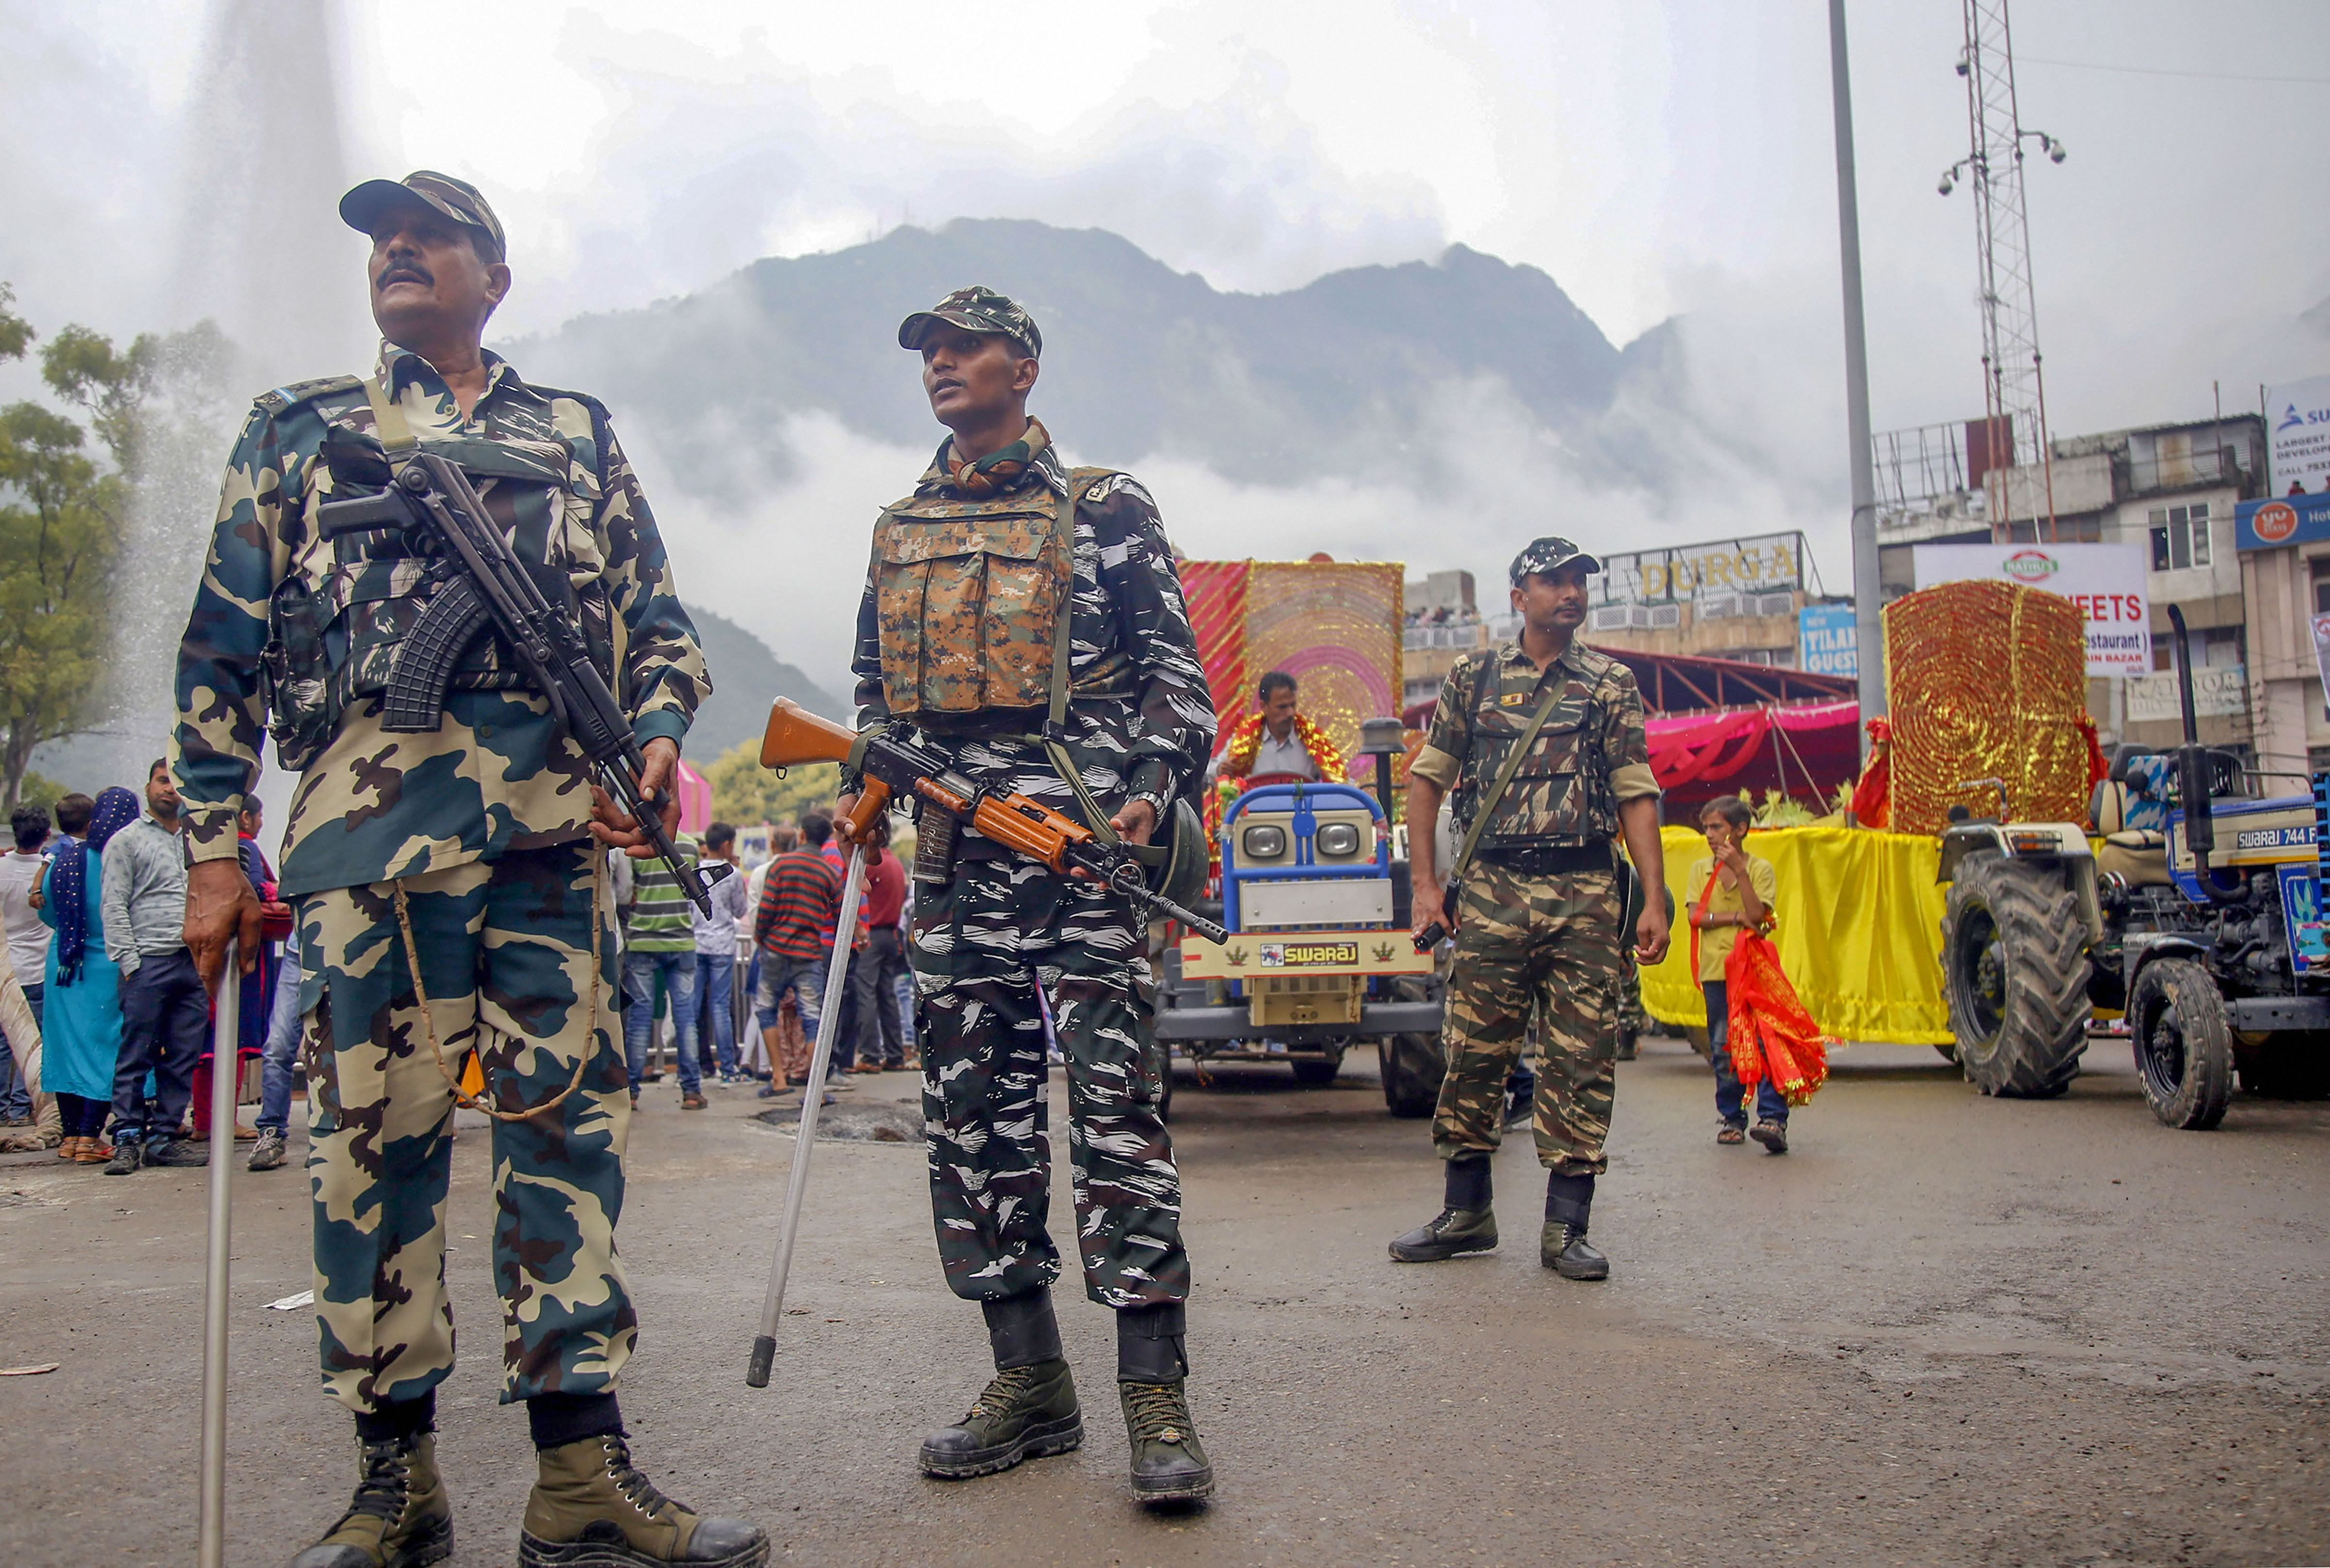 CRPF soldiers stand guard during a procession on the the first day of Navratri festival at Katra, about 45 kms from Jammu, Sunday, September 29, 2019.